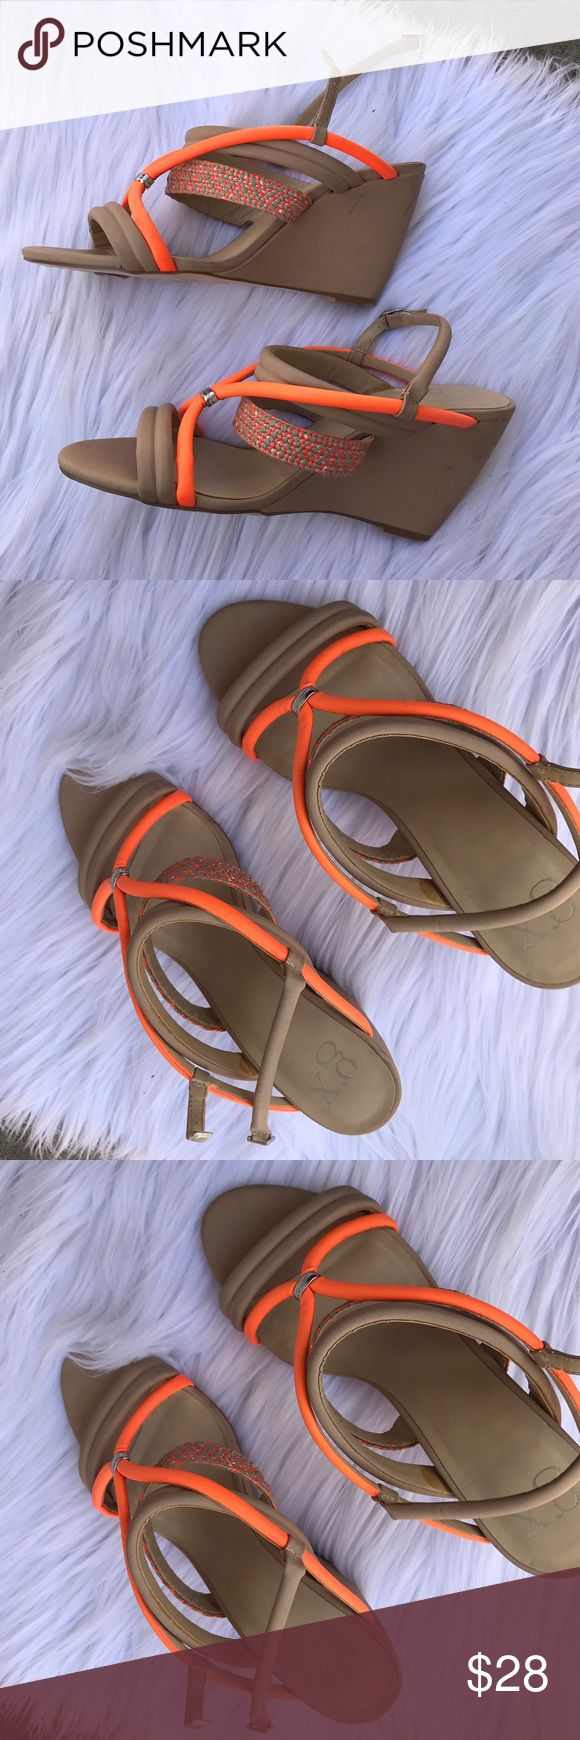 GWEN STEFANI GX SZ 10 BEIGE ORANGE WEDGES SHOES As seen have some lil small stains on the side that are hardly noticeable ❤ GX by Gwen Stefani Shoes